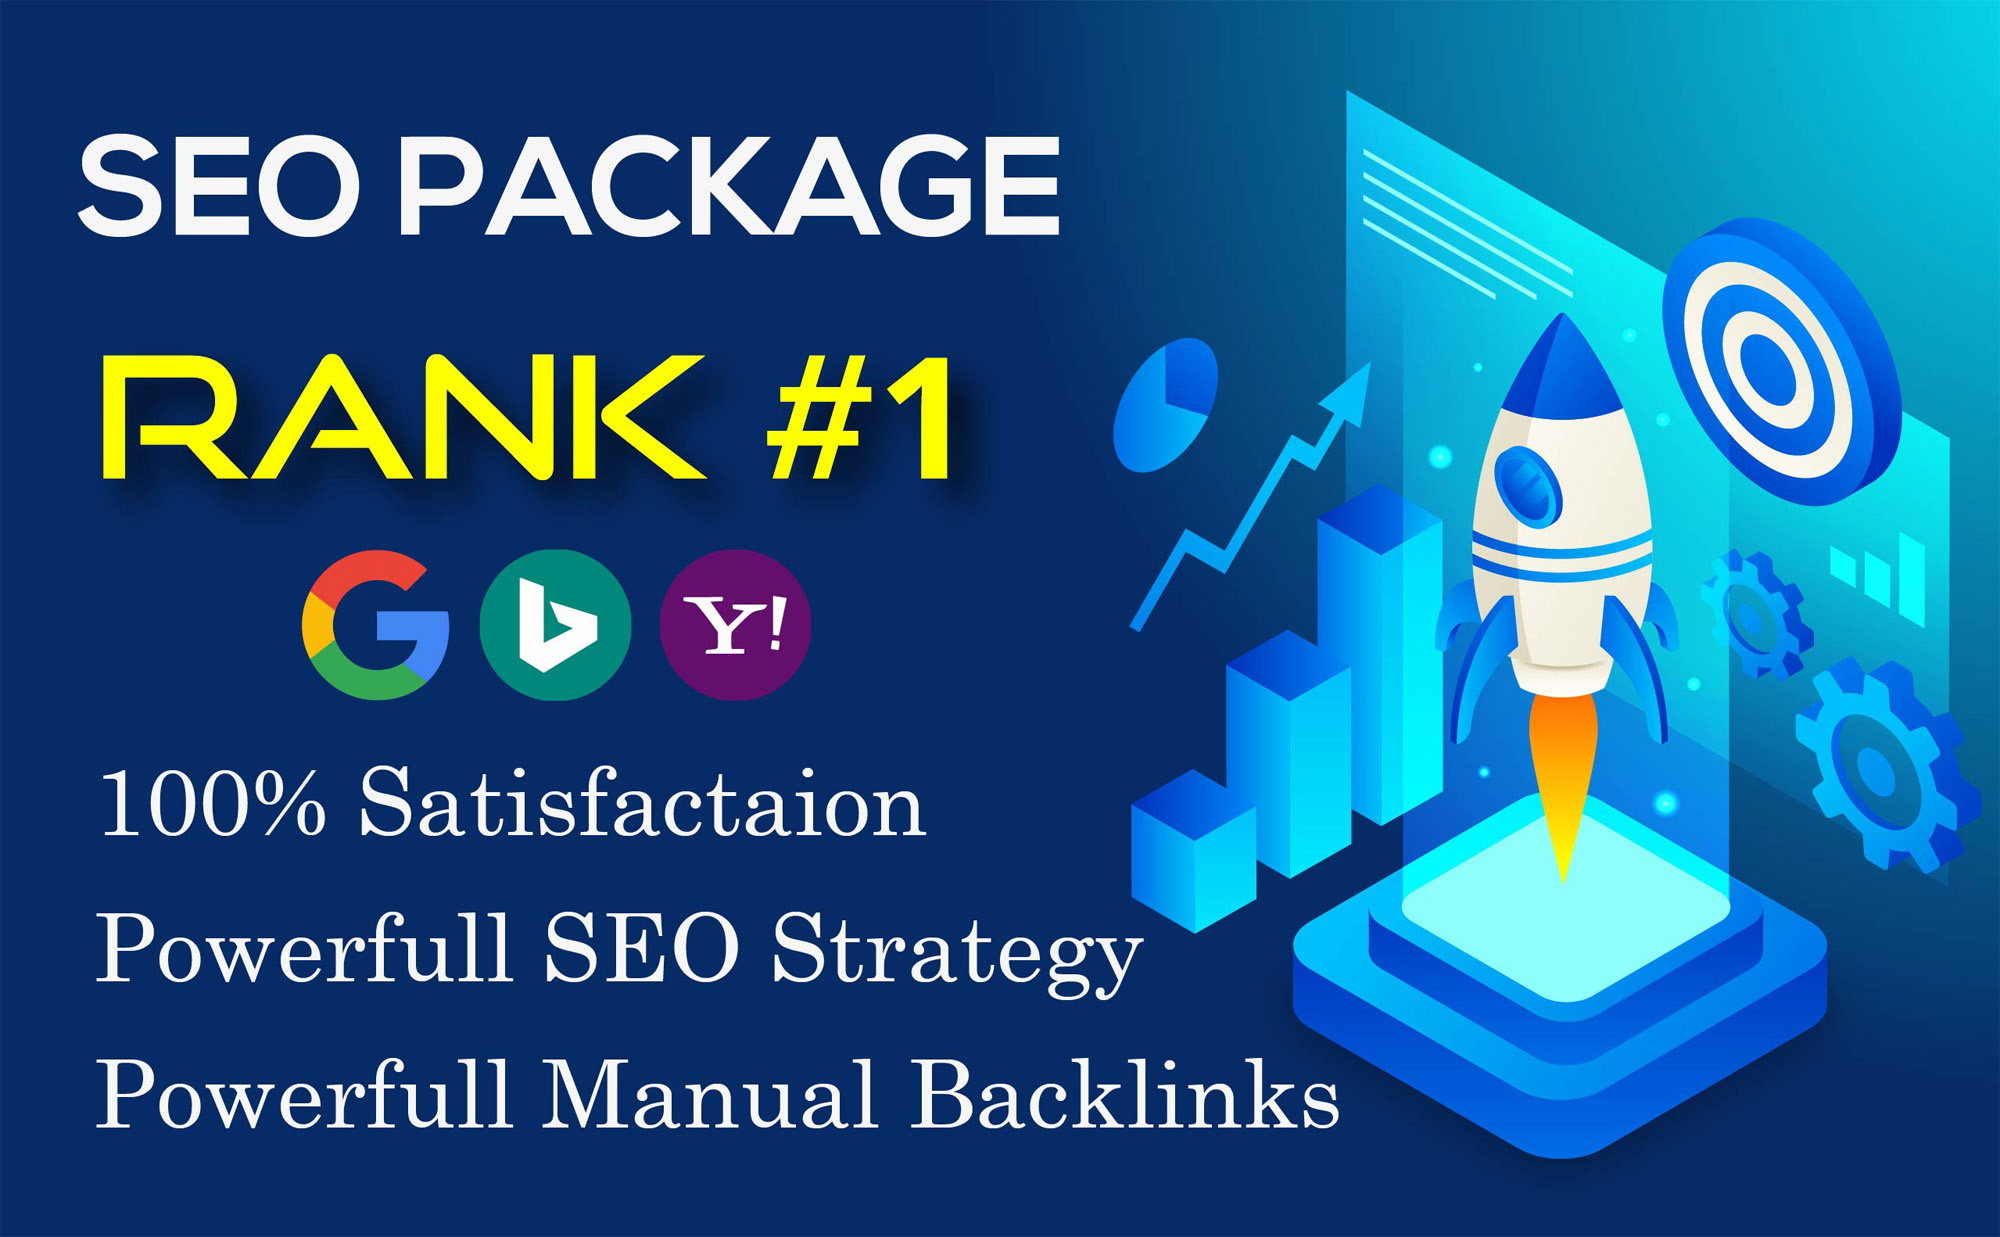 I Will Provide Seo backlink package for your website ranking